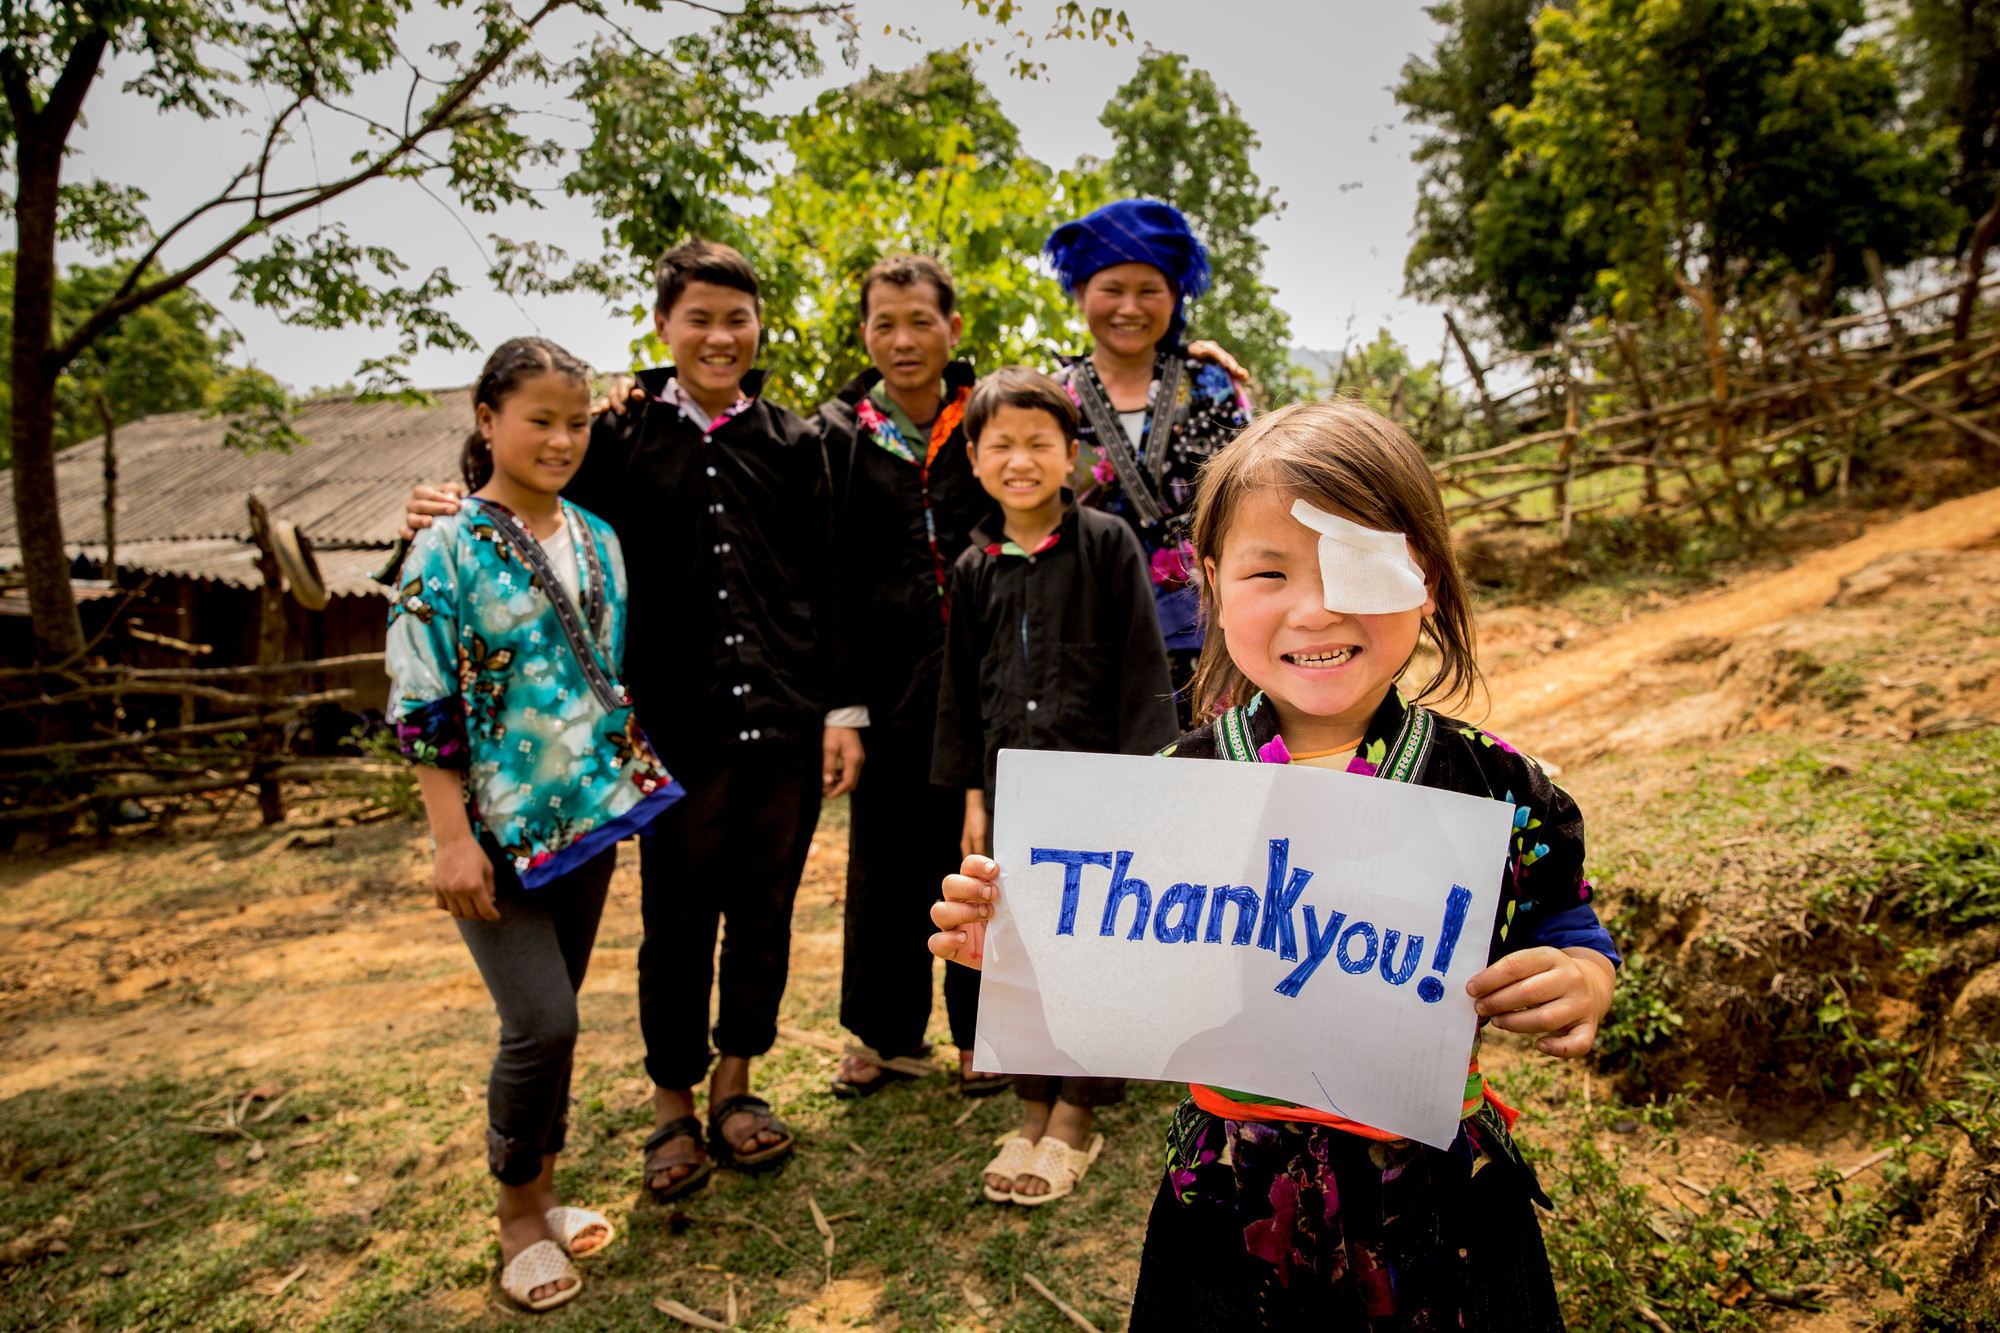 Nhung holding a Thank You sign and smiling, with her family standing behind her.